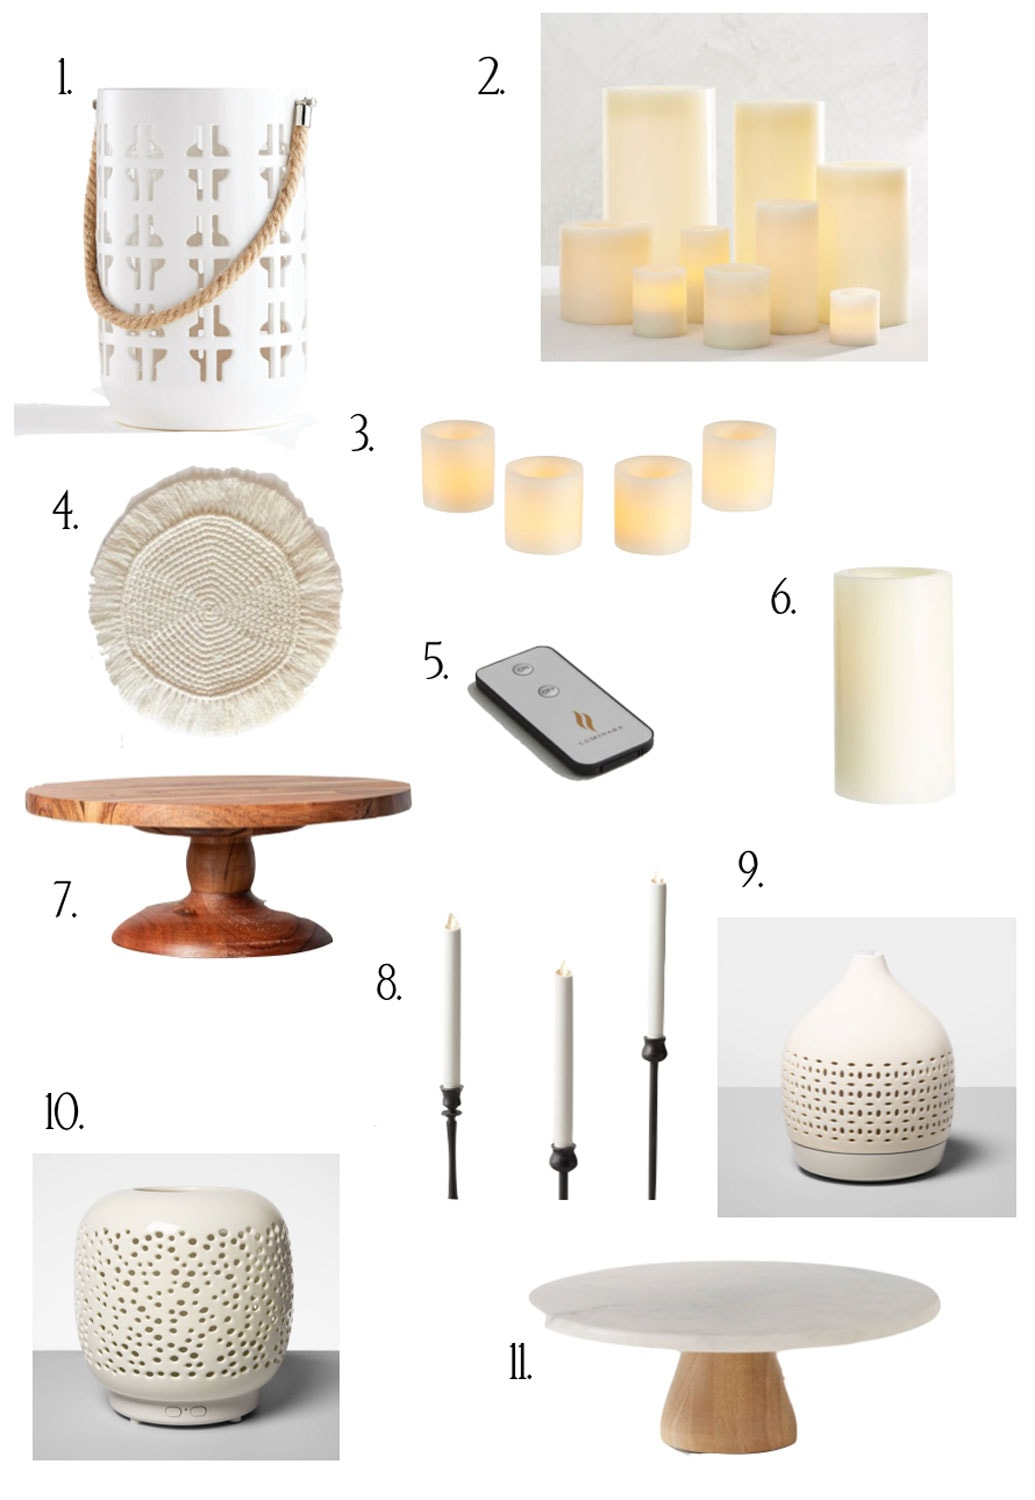 candles, cakes plates, hurricanes on white background